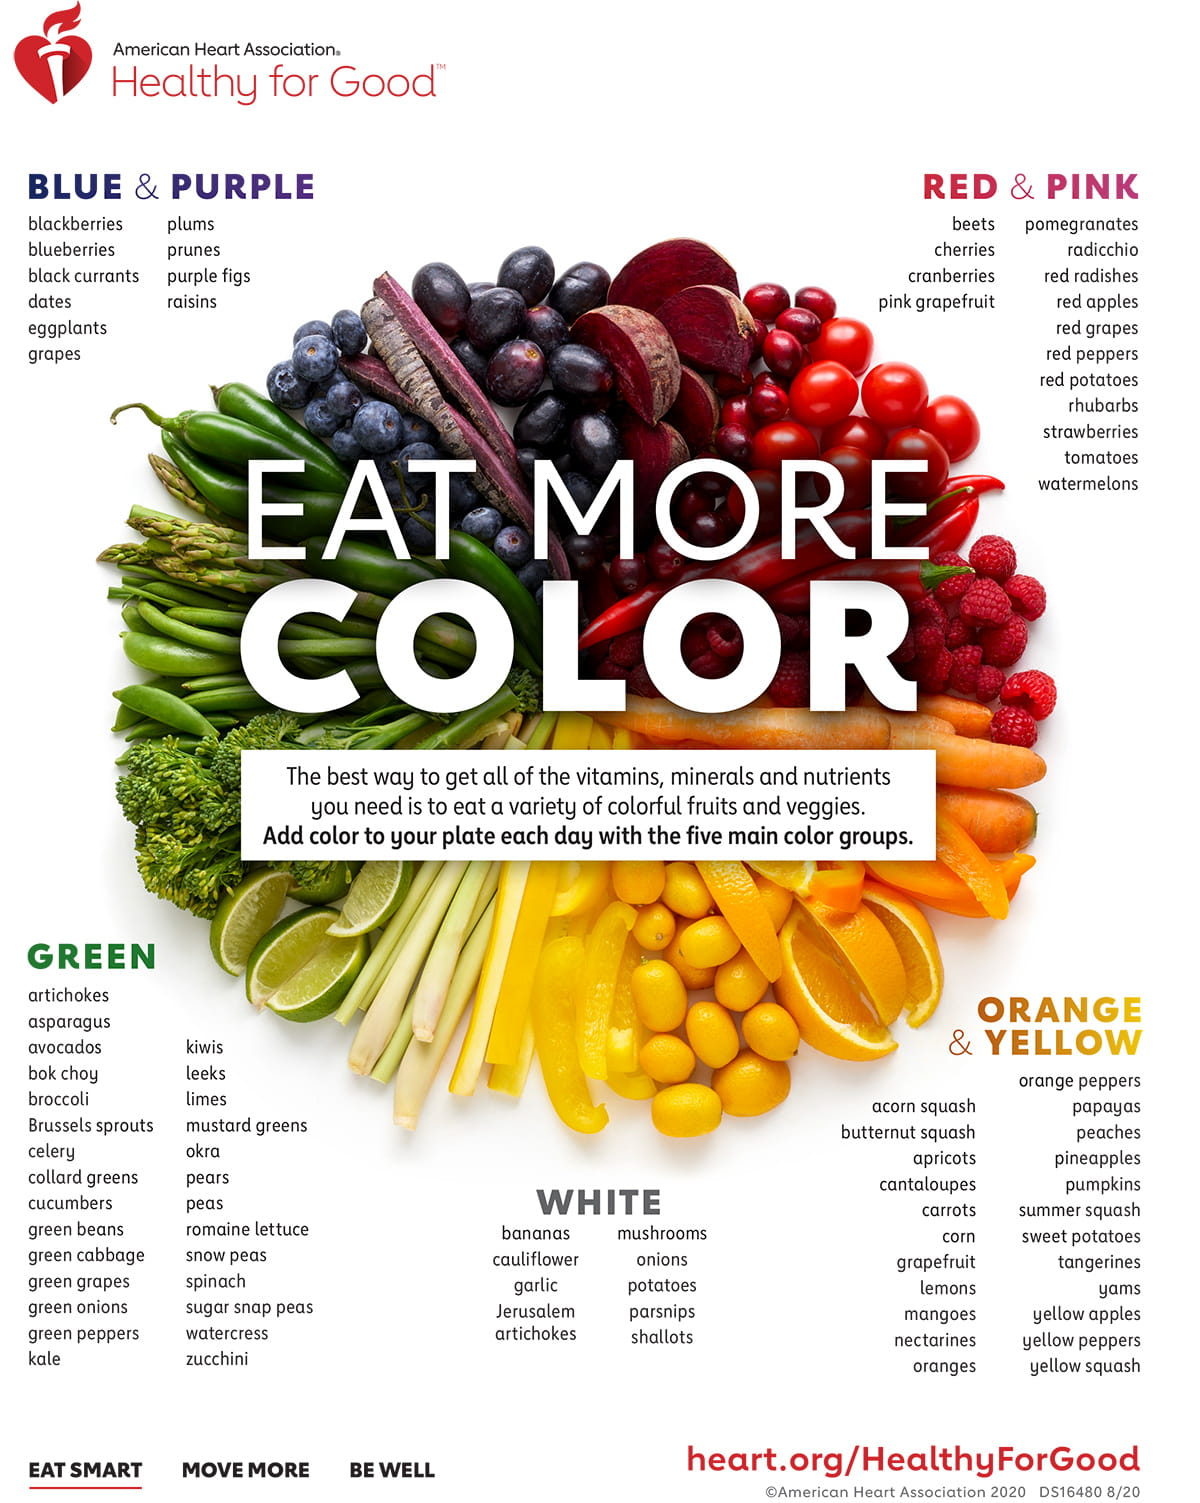 Eat More Color infographic